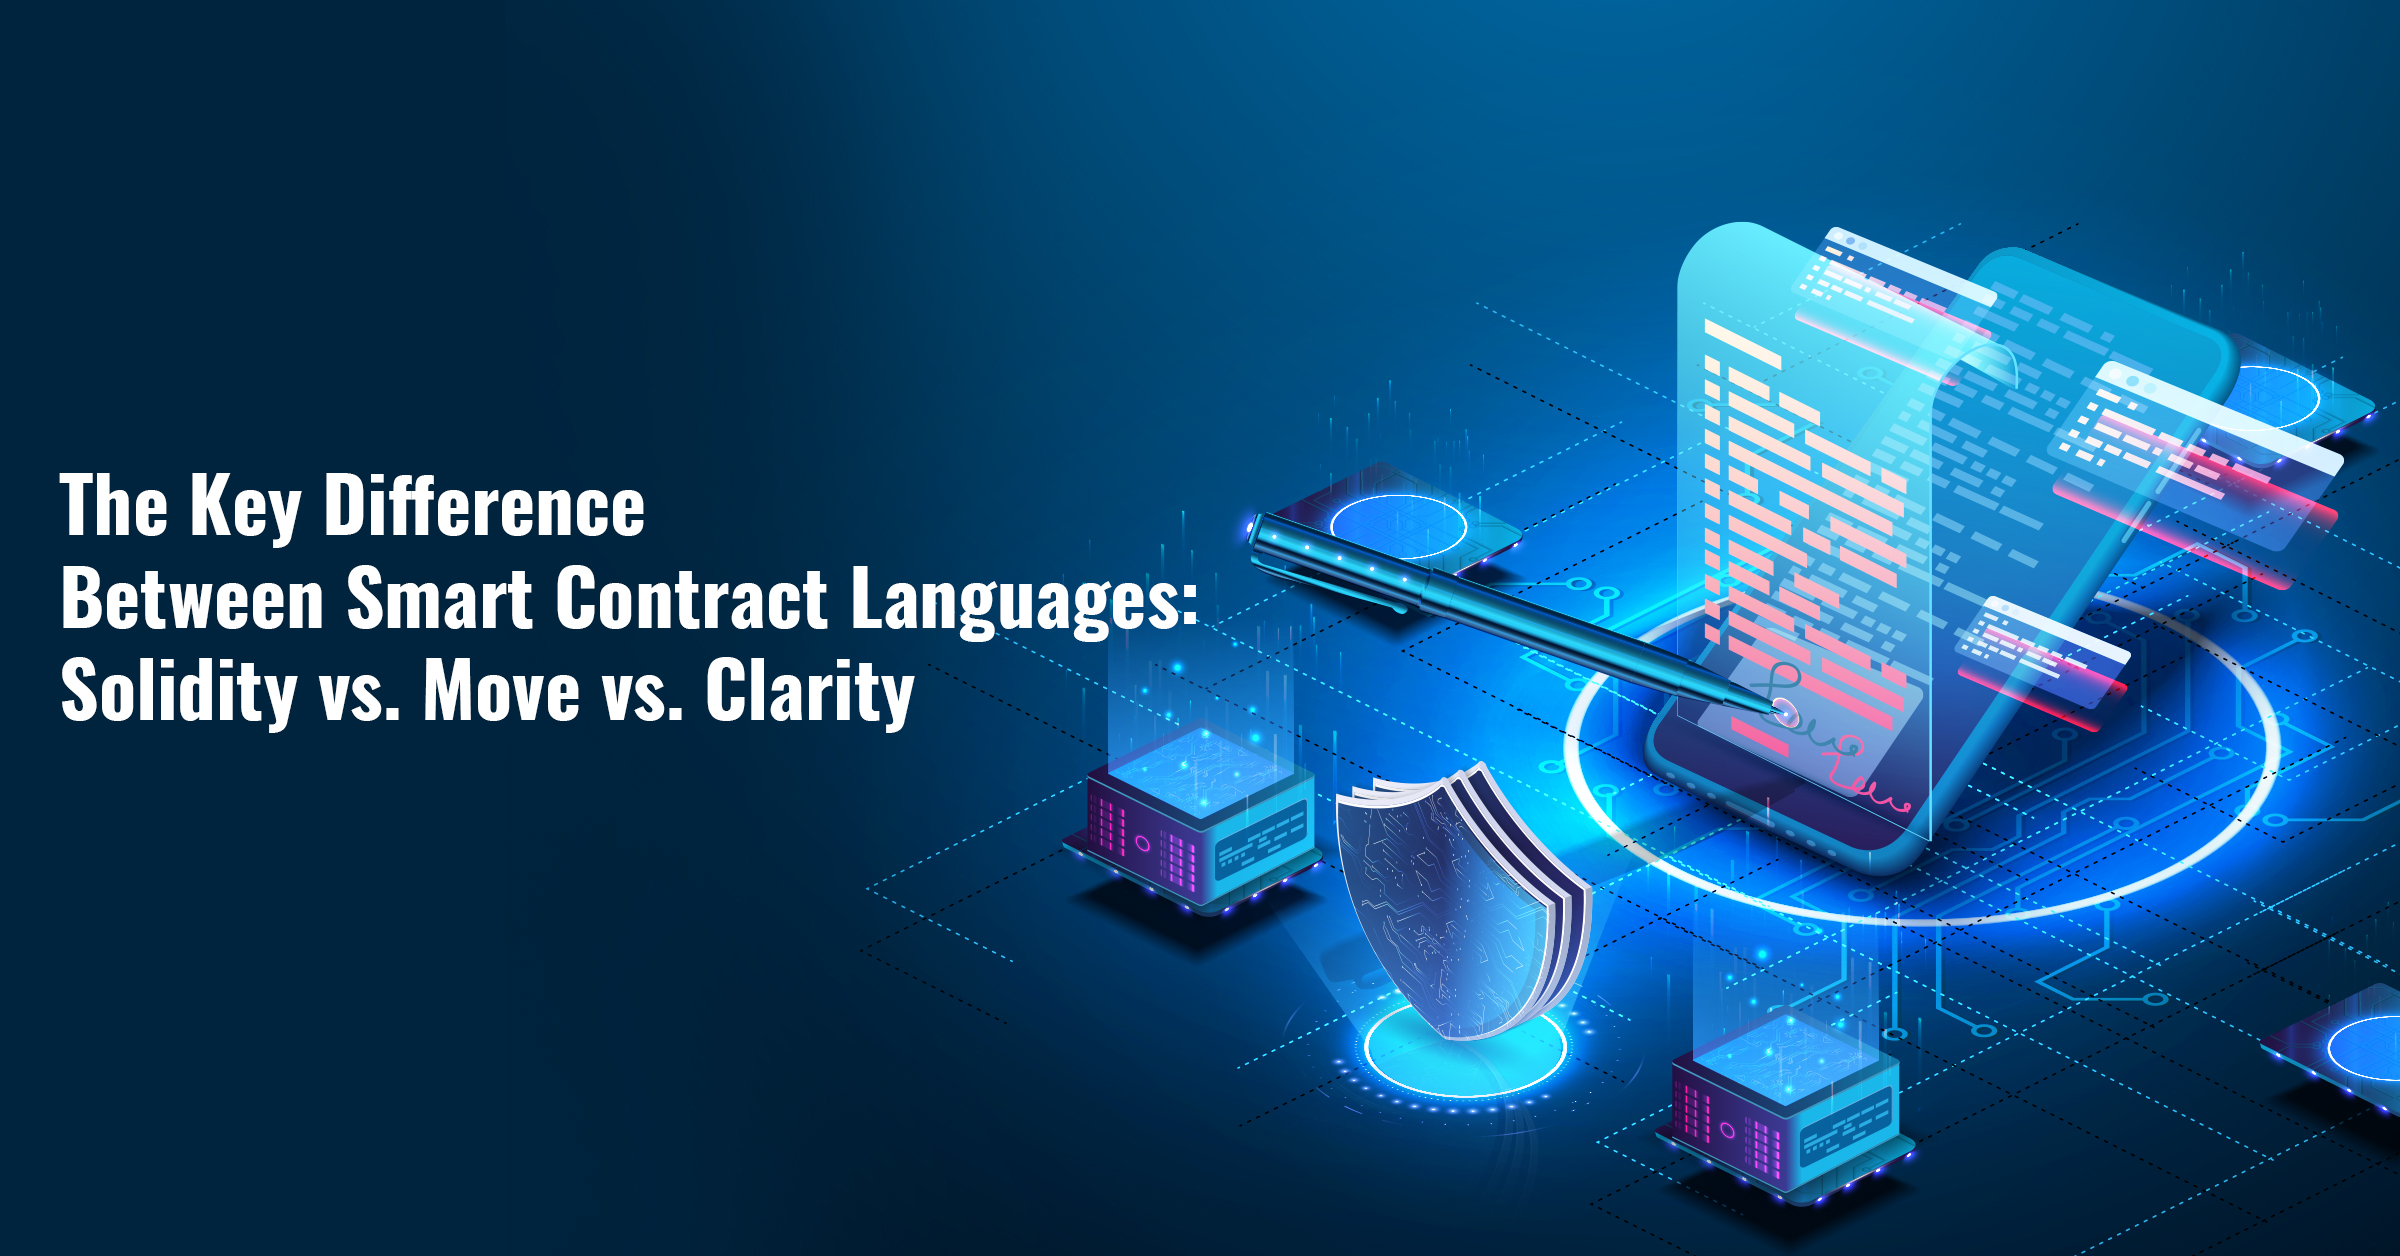 The Key Difference Between Smart Contract Languages Solidity vs. Move vs. Clarity (1)